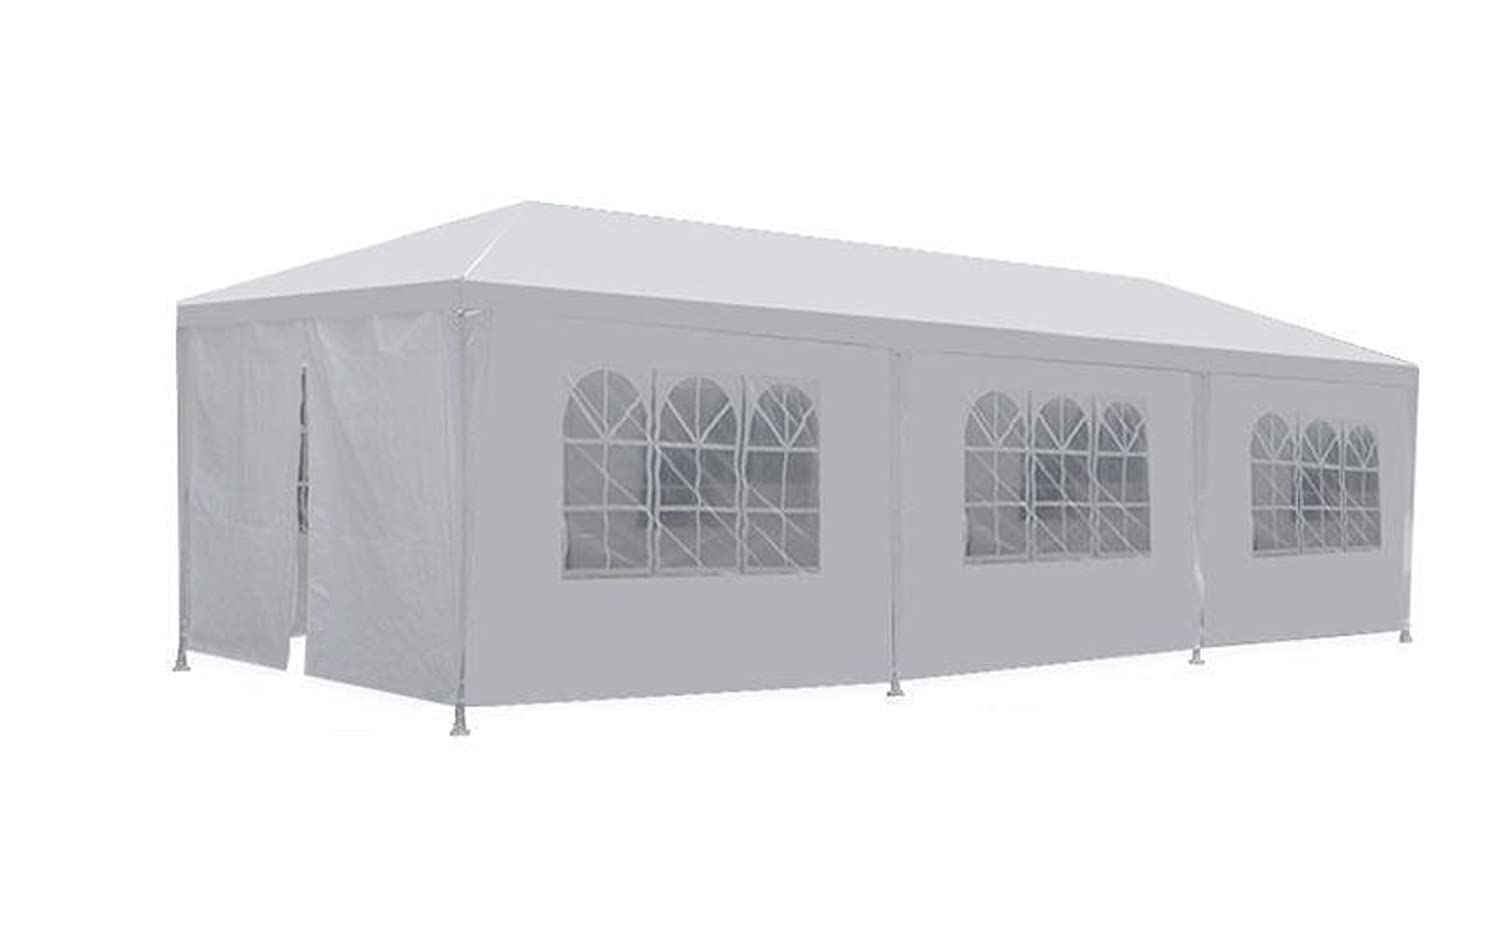 Amazon.com New 10u0027x30u0027 White Outdoor Gazebo Canopy Party Wedding Tent Removable Walls Garden u0026 Outdoor  sc 1 st  Amazon.com : tent outdoor - memphite.com